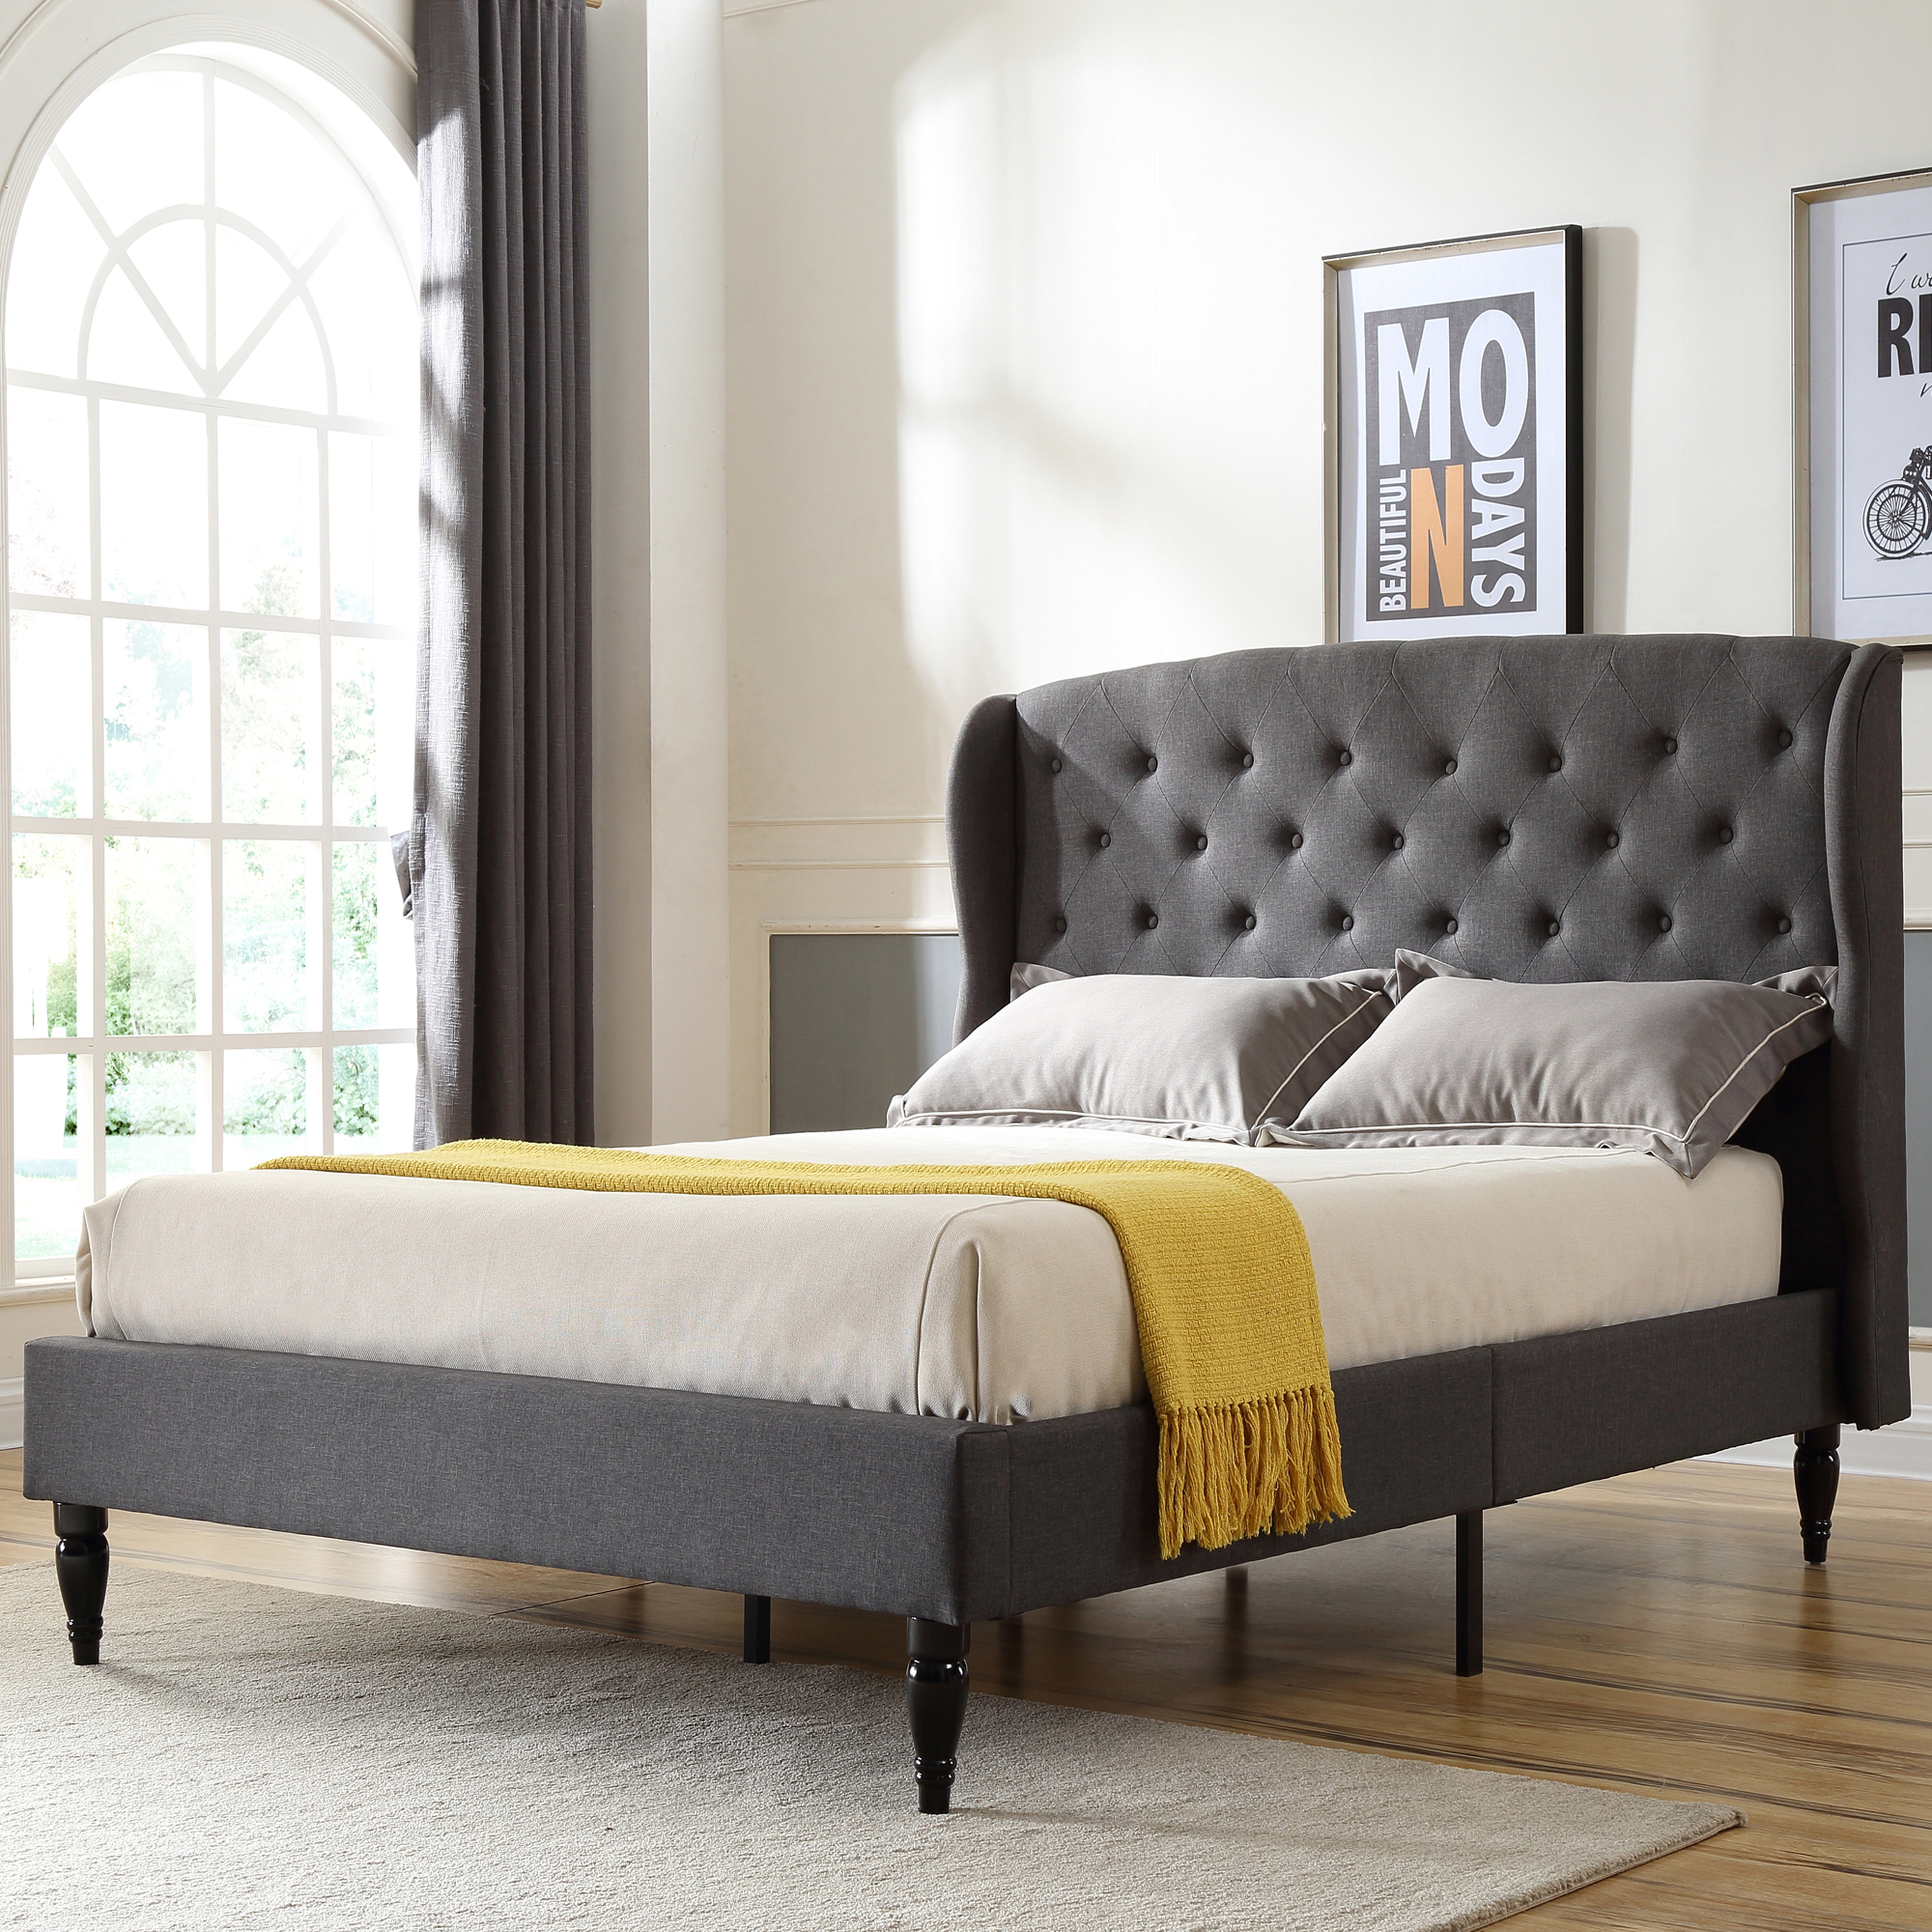 Modern Sleep Coventry Upholstered Platform Bed | Headboard and